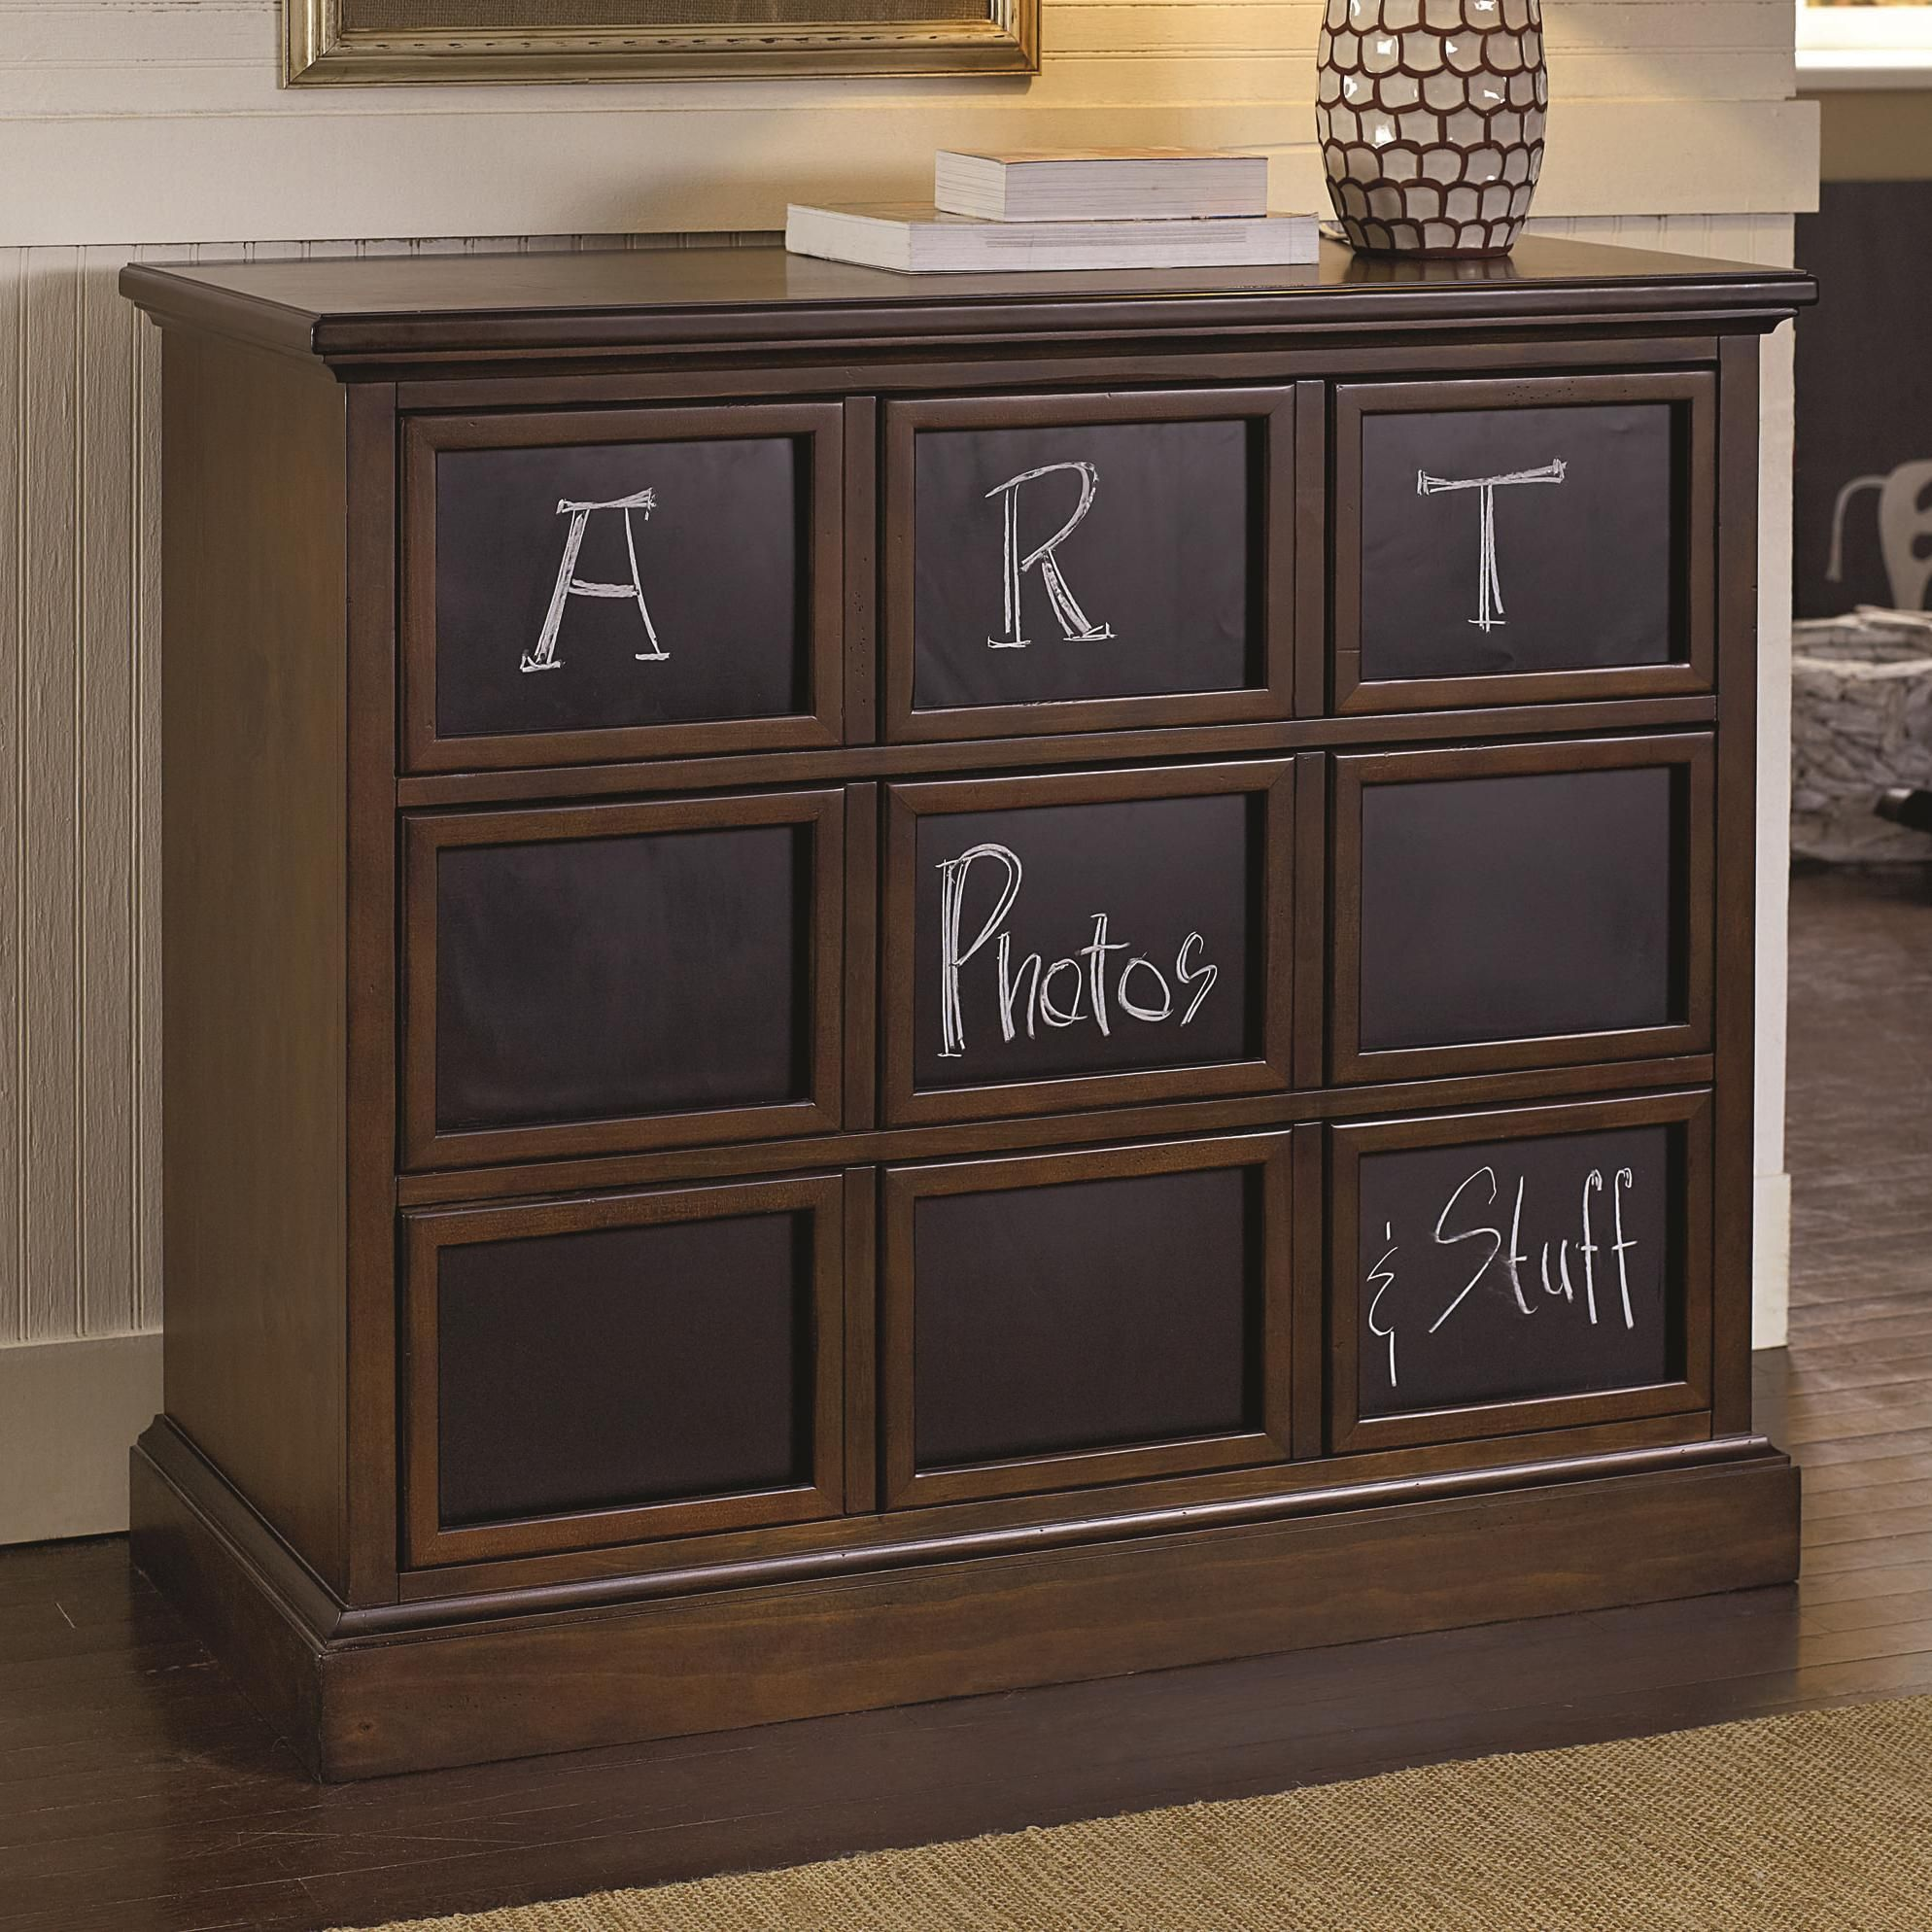 A blackboard chest is fun for kids and adults alike.